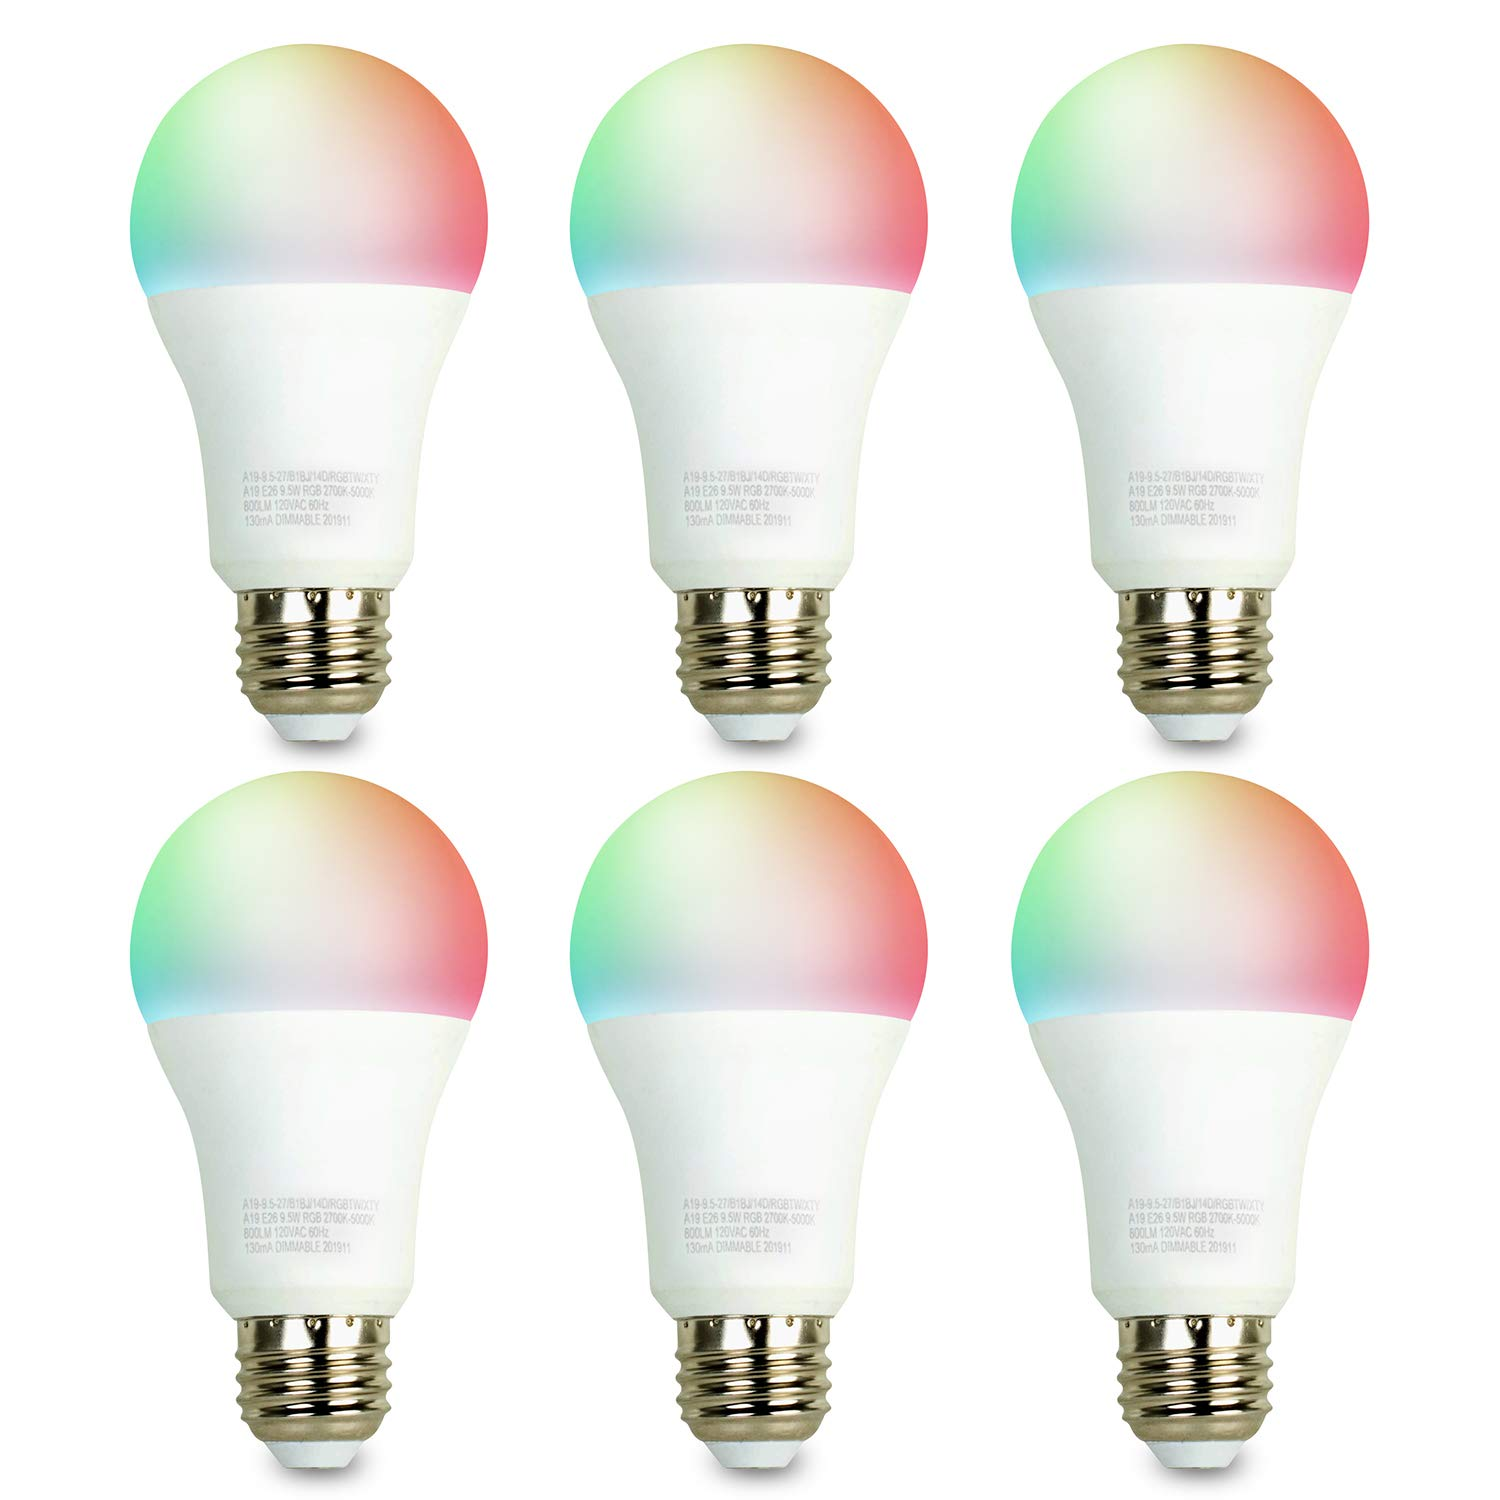 iBRIGHT Smart WiFi LED Light Bulb, 9.5W (60W Equivalent) 800 lumens A19 E26 Dimmable Multicolor 120VAC 2700K-5000K RGB, No Hub Required (Works with Amazon Alexa & Google Assistant) 6 Pack